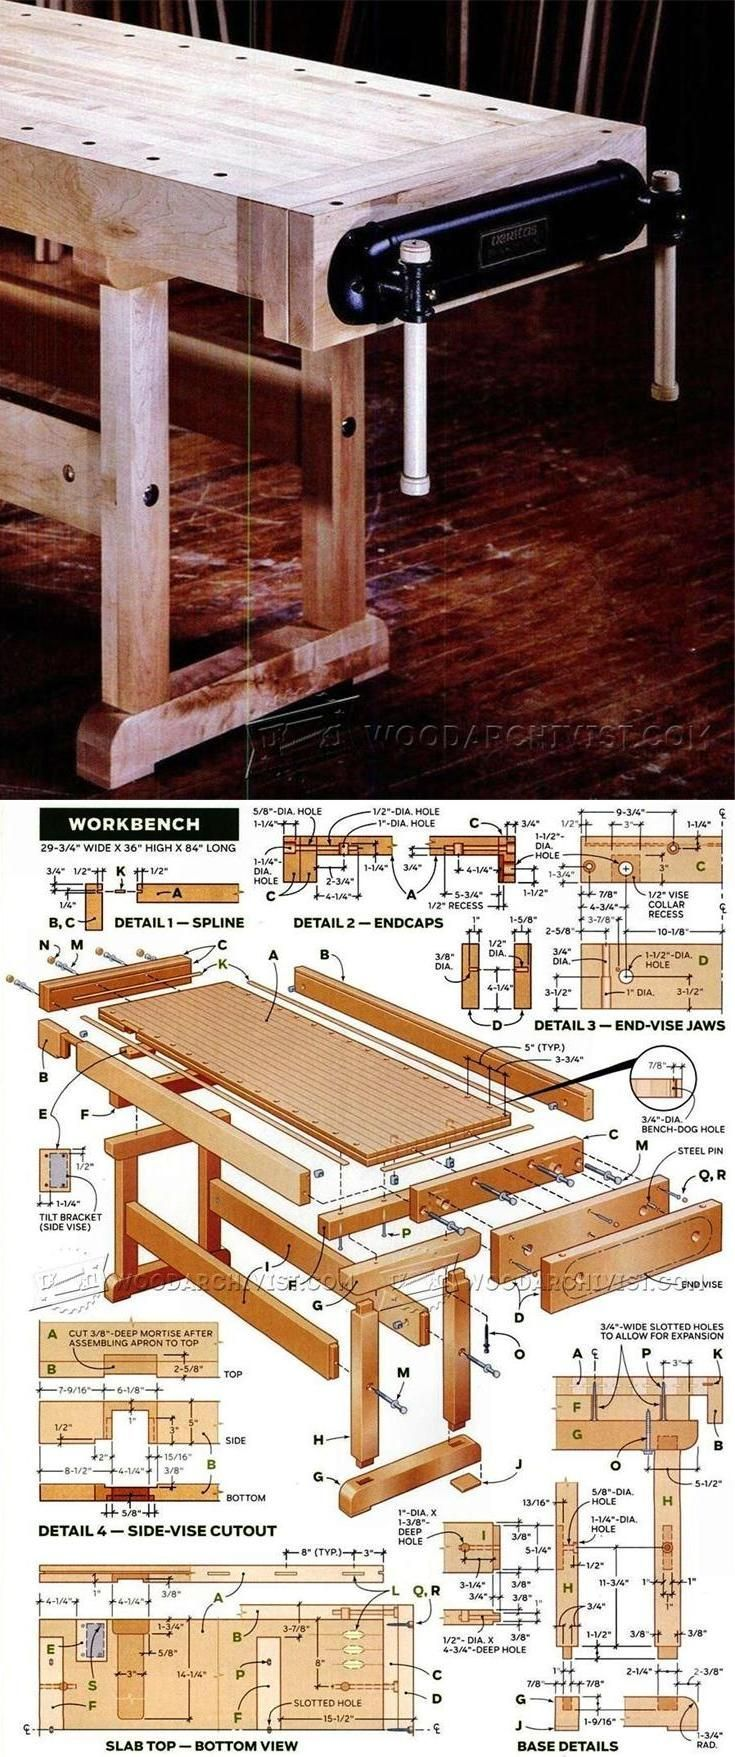 Plan D Etabli Bois workbench plan - workshop solutions projects, tips and